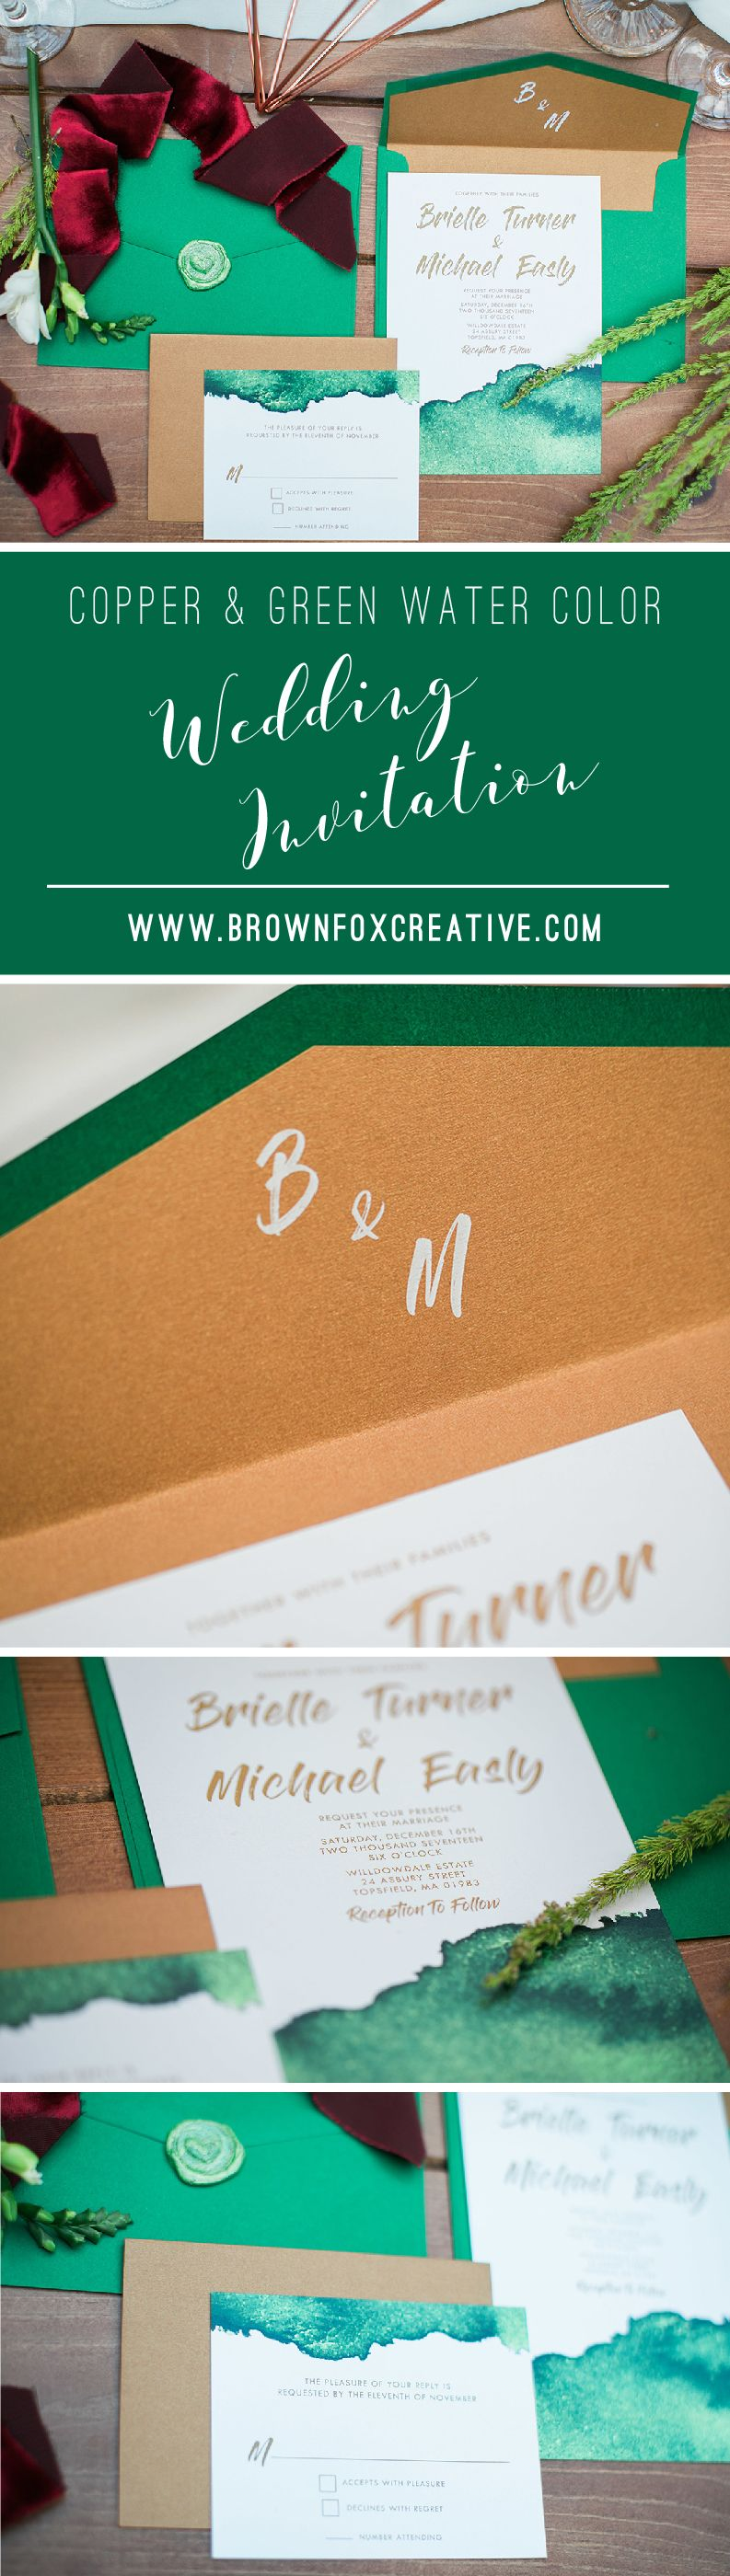 modern copper green water color wedding invitation includes